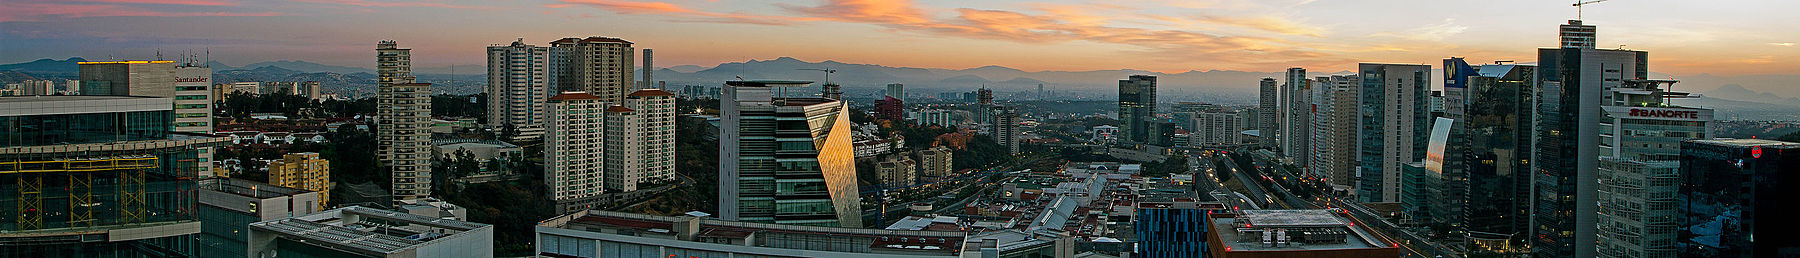 Santa Fe is one of the centers of greatest economic activity in the city. Santa Fe Mexico City Wikivoyage banner.jpg